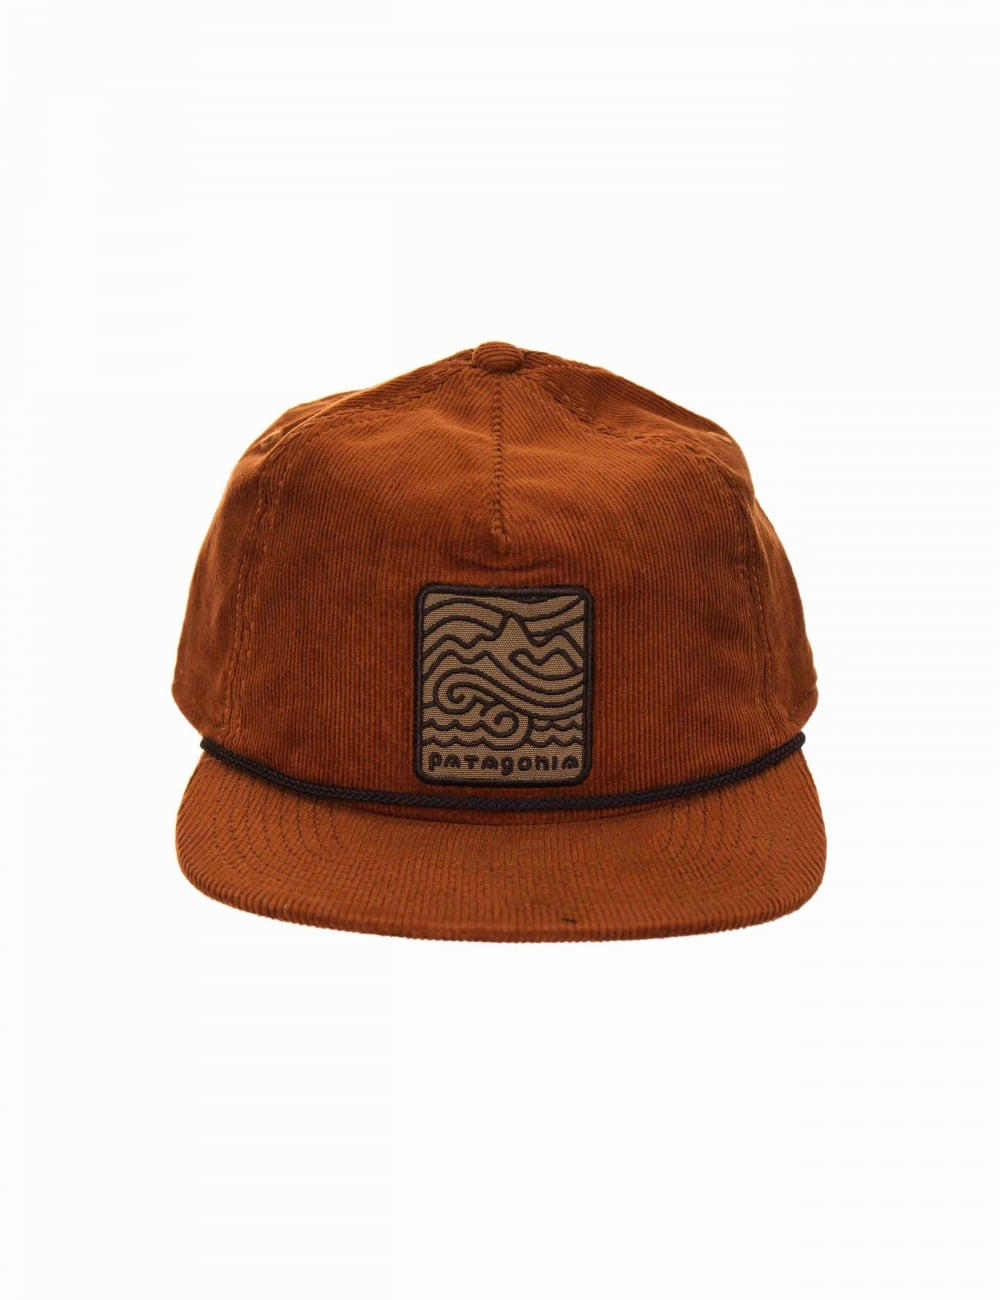 31f6bc9e Patagonia Seazy Breezy Corduroy Hat - Saddle - Accessories from Fat ...